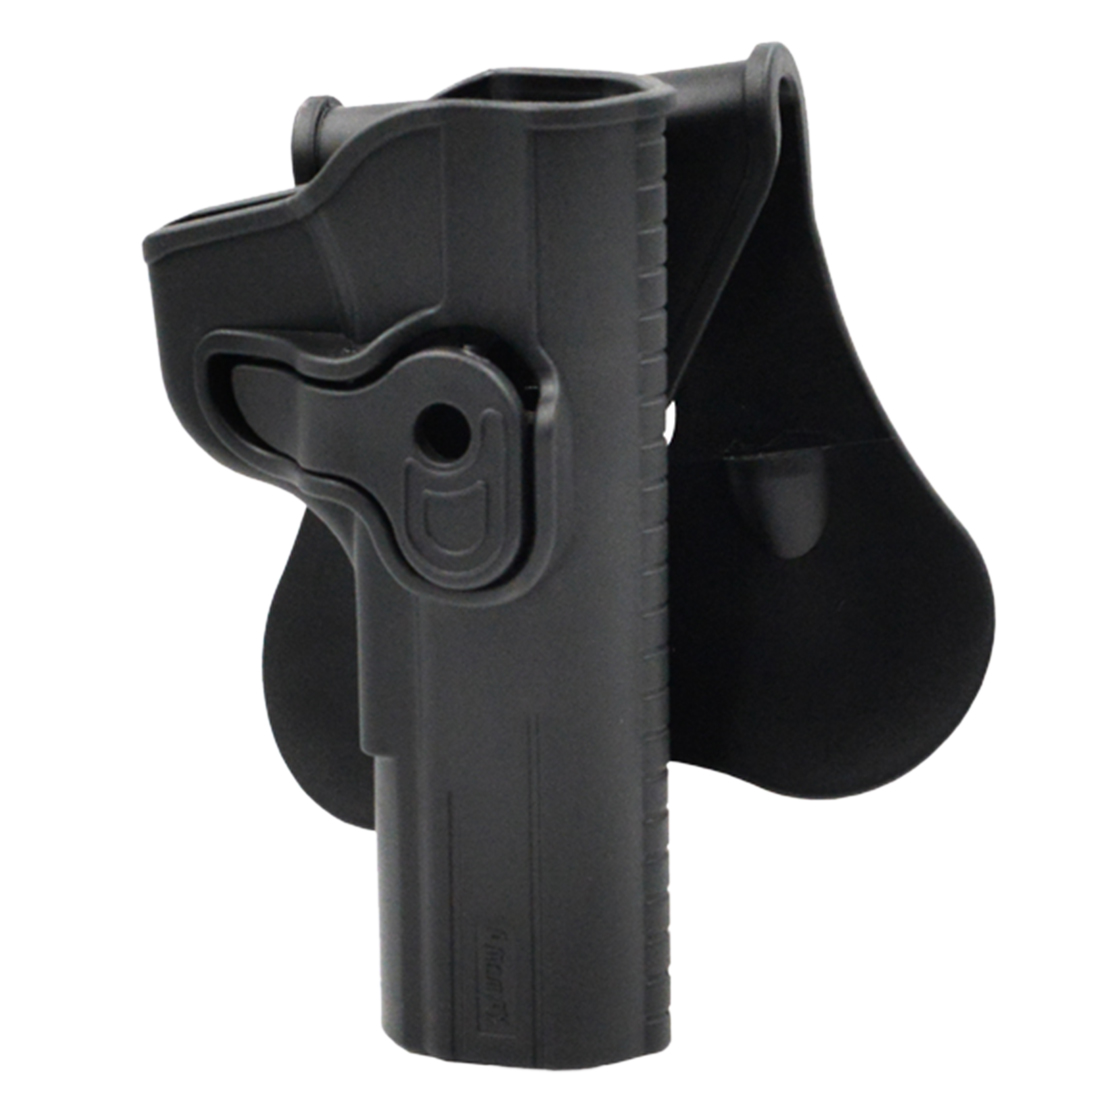 Amomax Adjustable Tactical Holster For Tokarev TT-33 - Right-handed Black(Standard Only With Waist Plate, No Other Accessories)